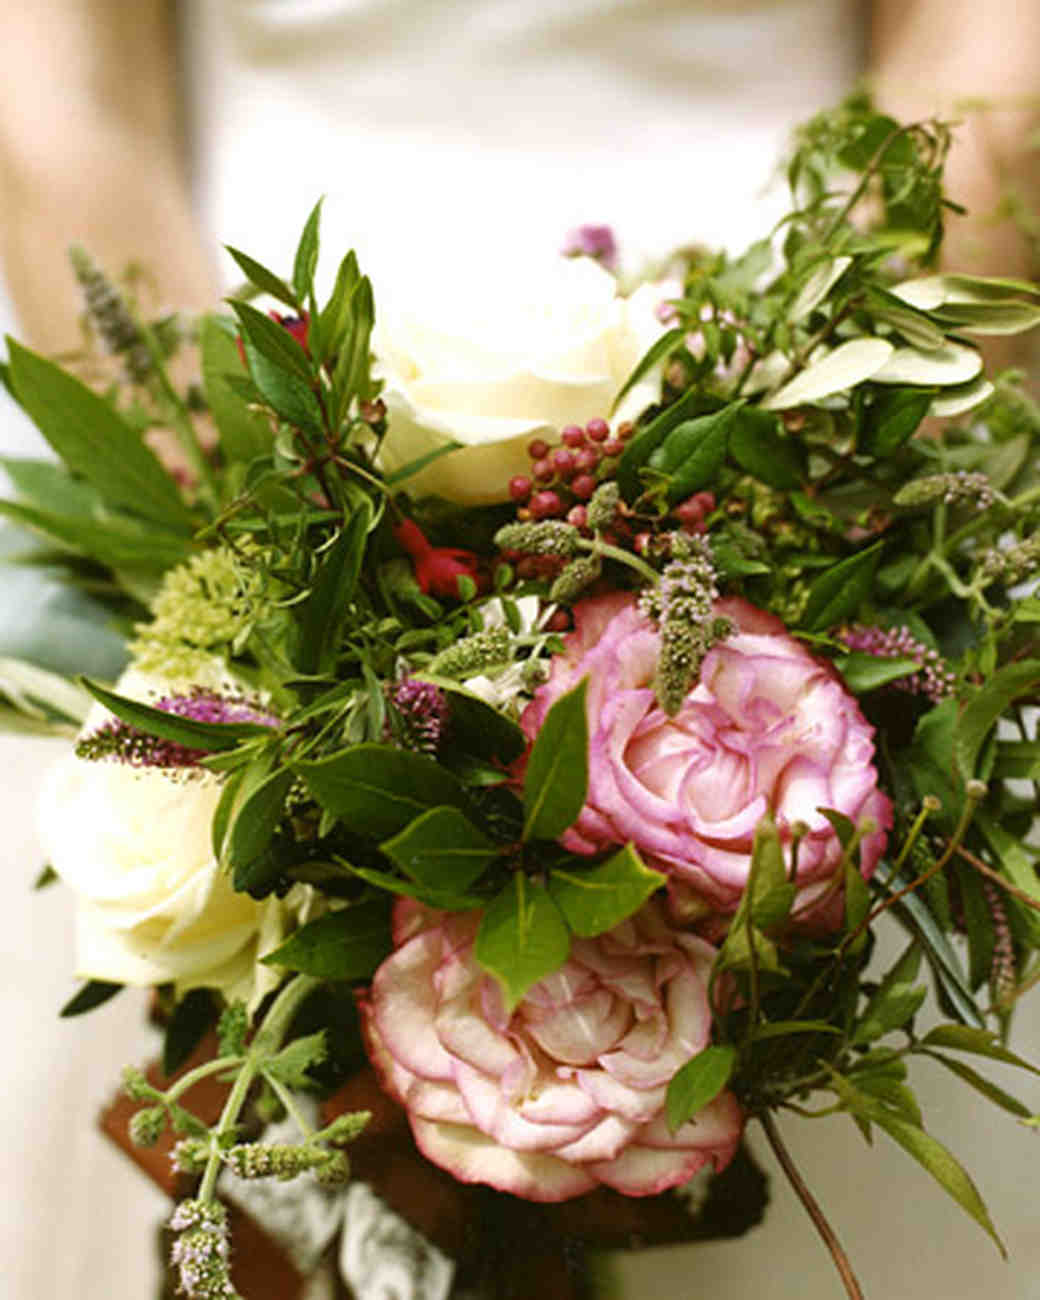 wa102557_win07_bouquet02.jpg